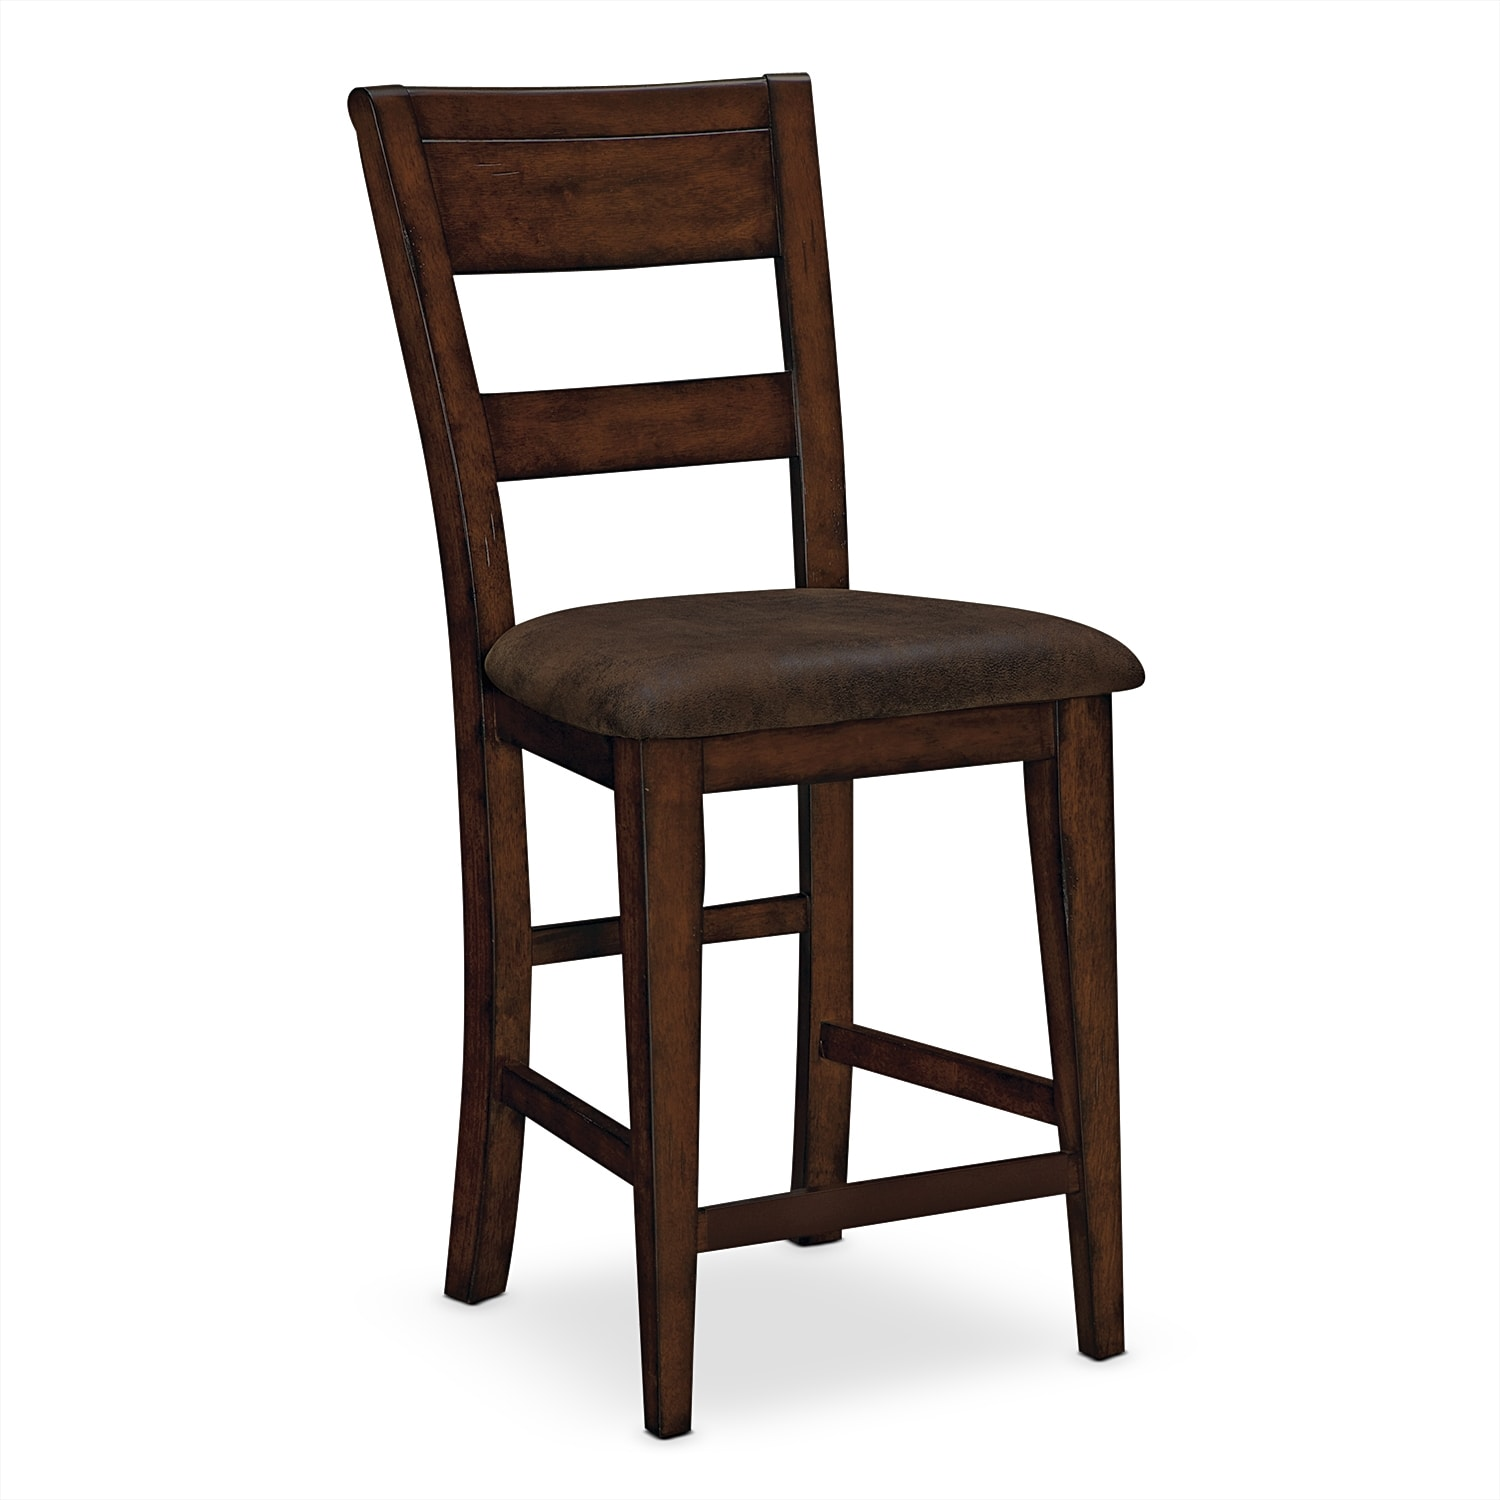 Counter Height Vs Bar Stool : Everett Dining Room Counter-Height Stool - Value City Furniture